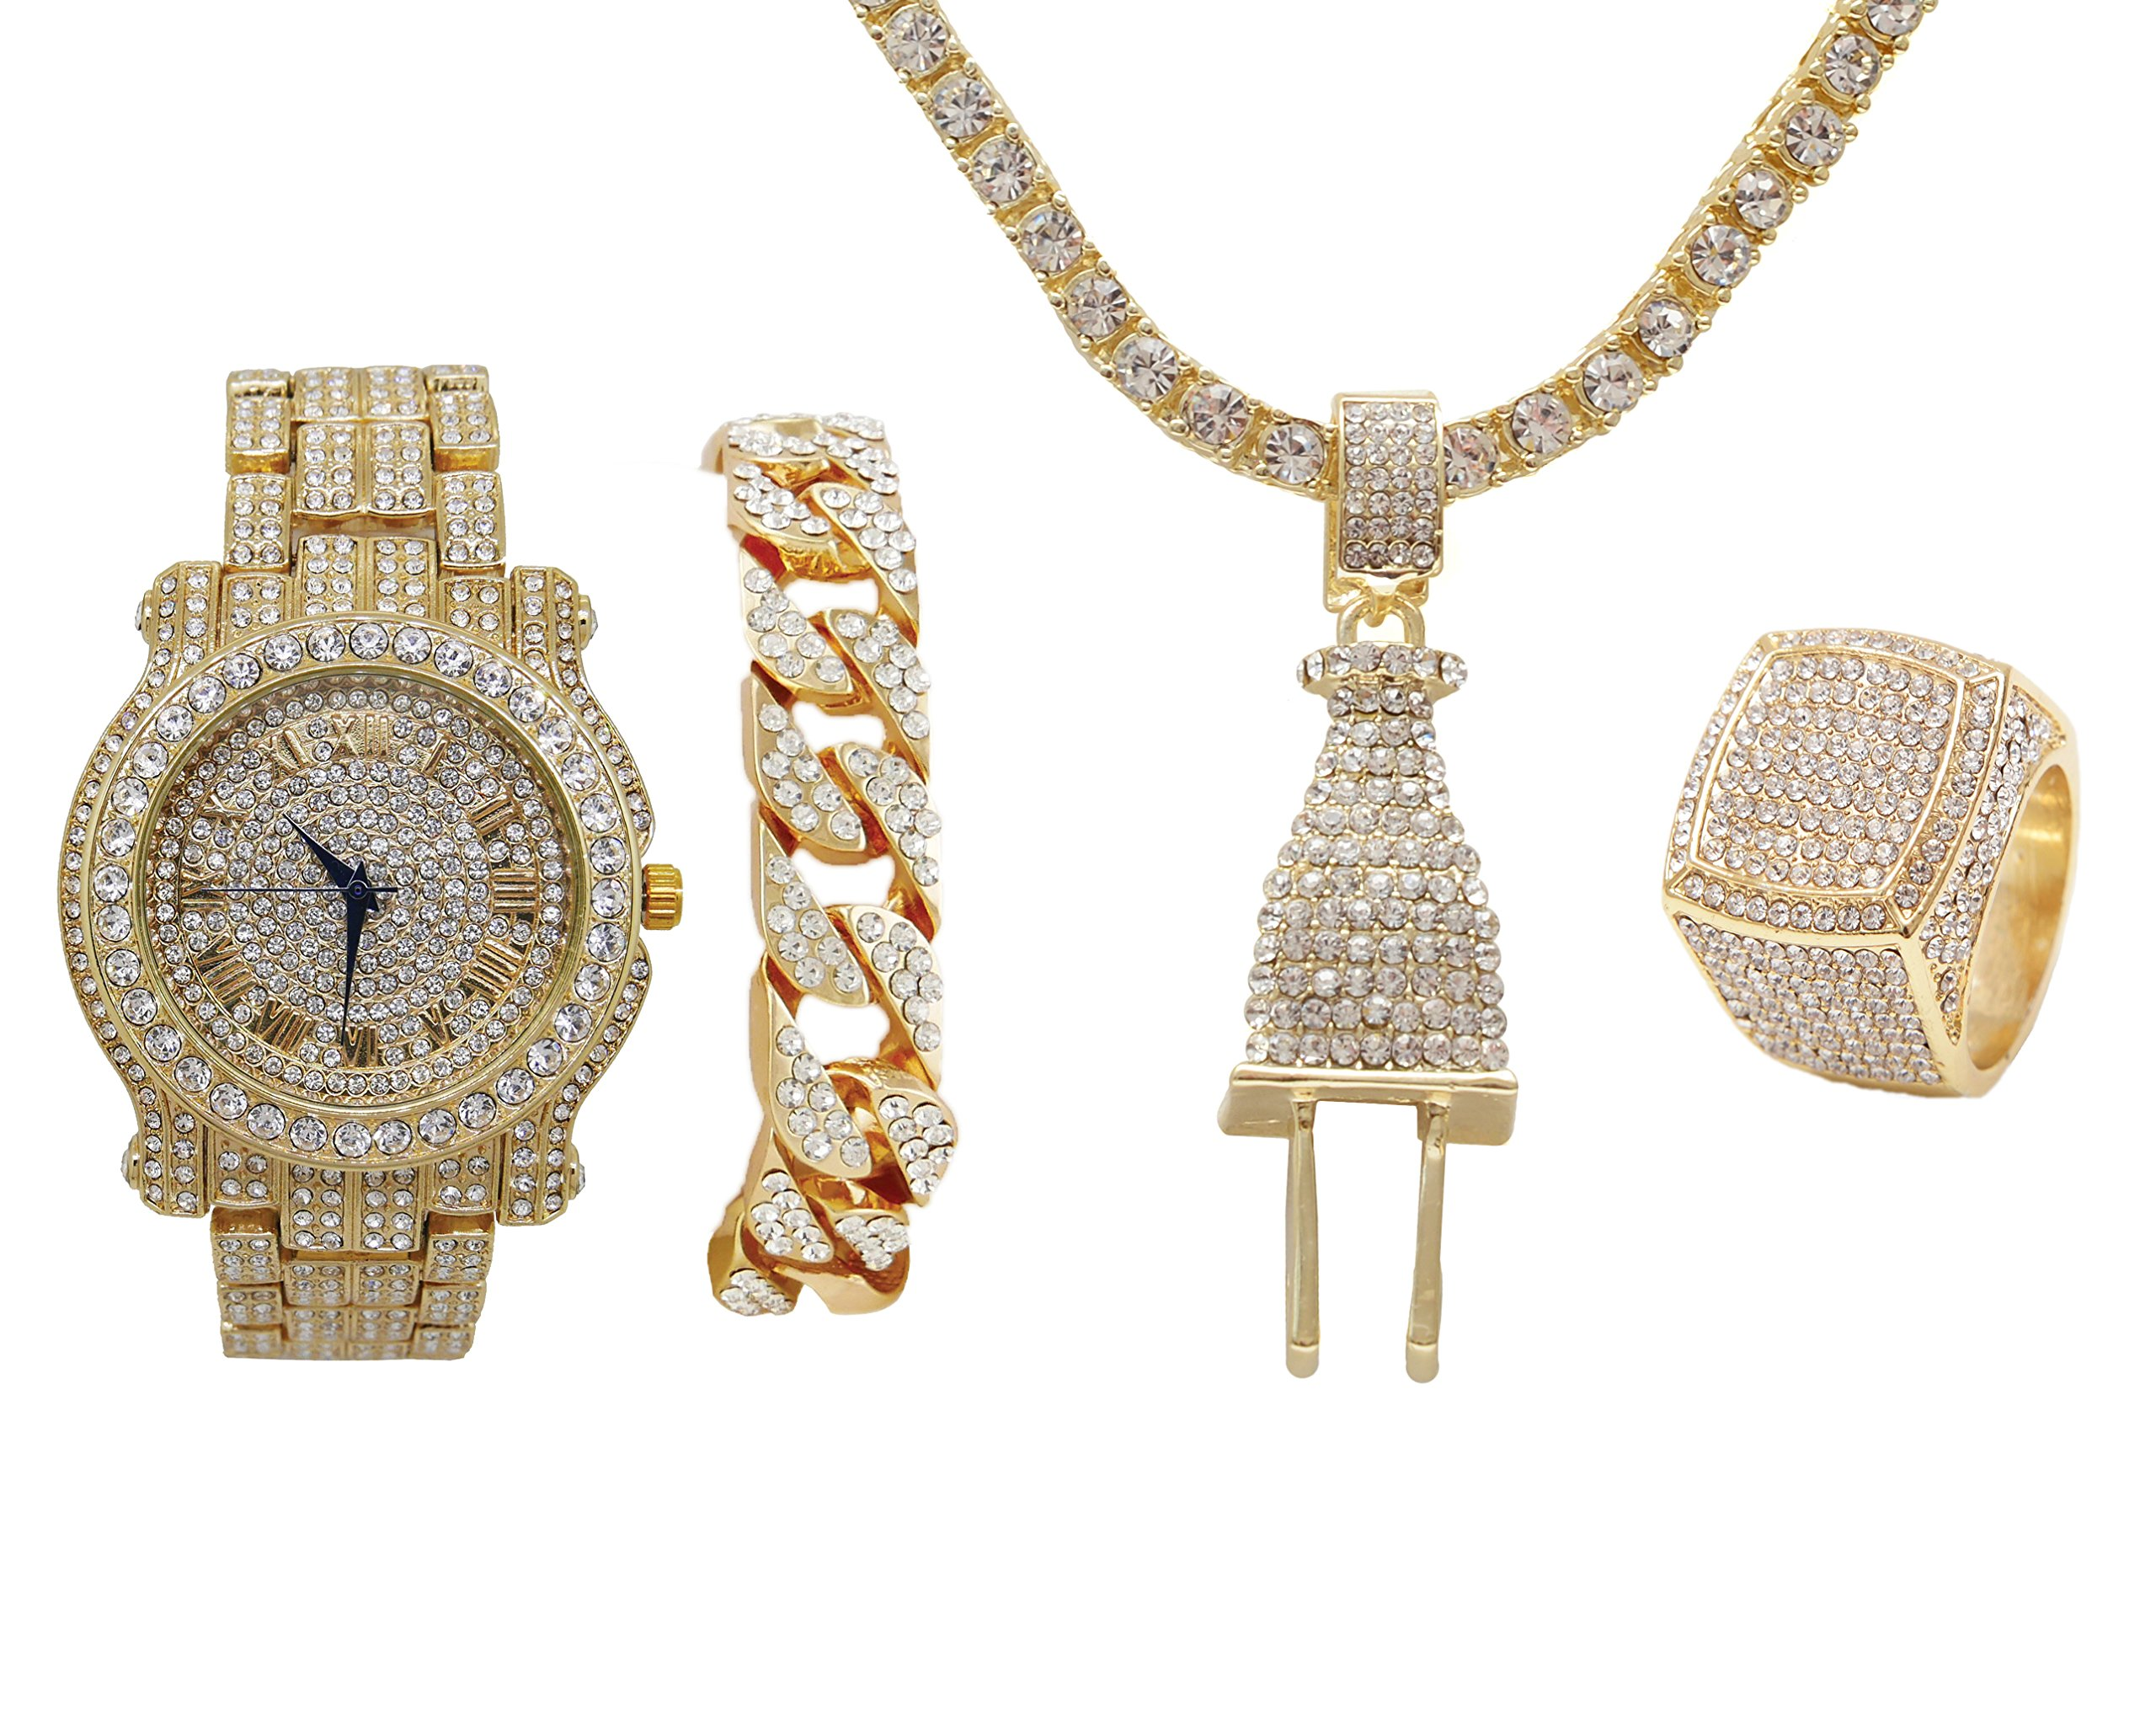 Bling Bling Plug Hip Hop Pendant - Iced Out Luxury Watch Covered with Crystal Clear Rhinestones - Gold Iced Cuban Bracelet and Bling Ring Gift Set - Shine Like a Celebrity - L0504Gld4 (10)